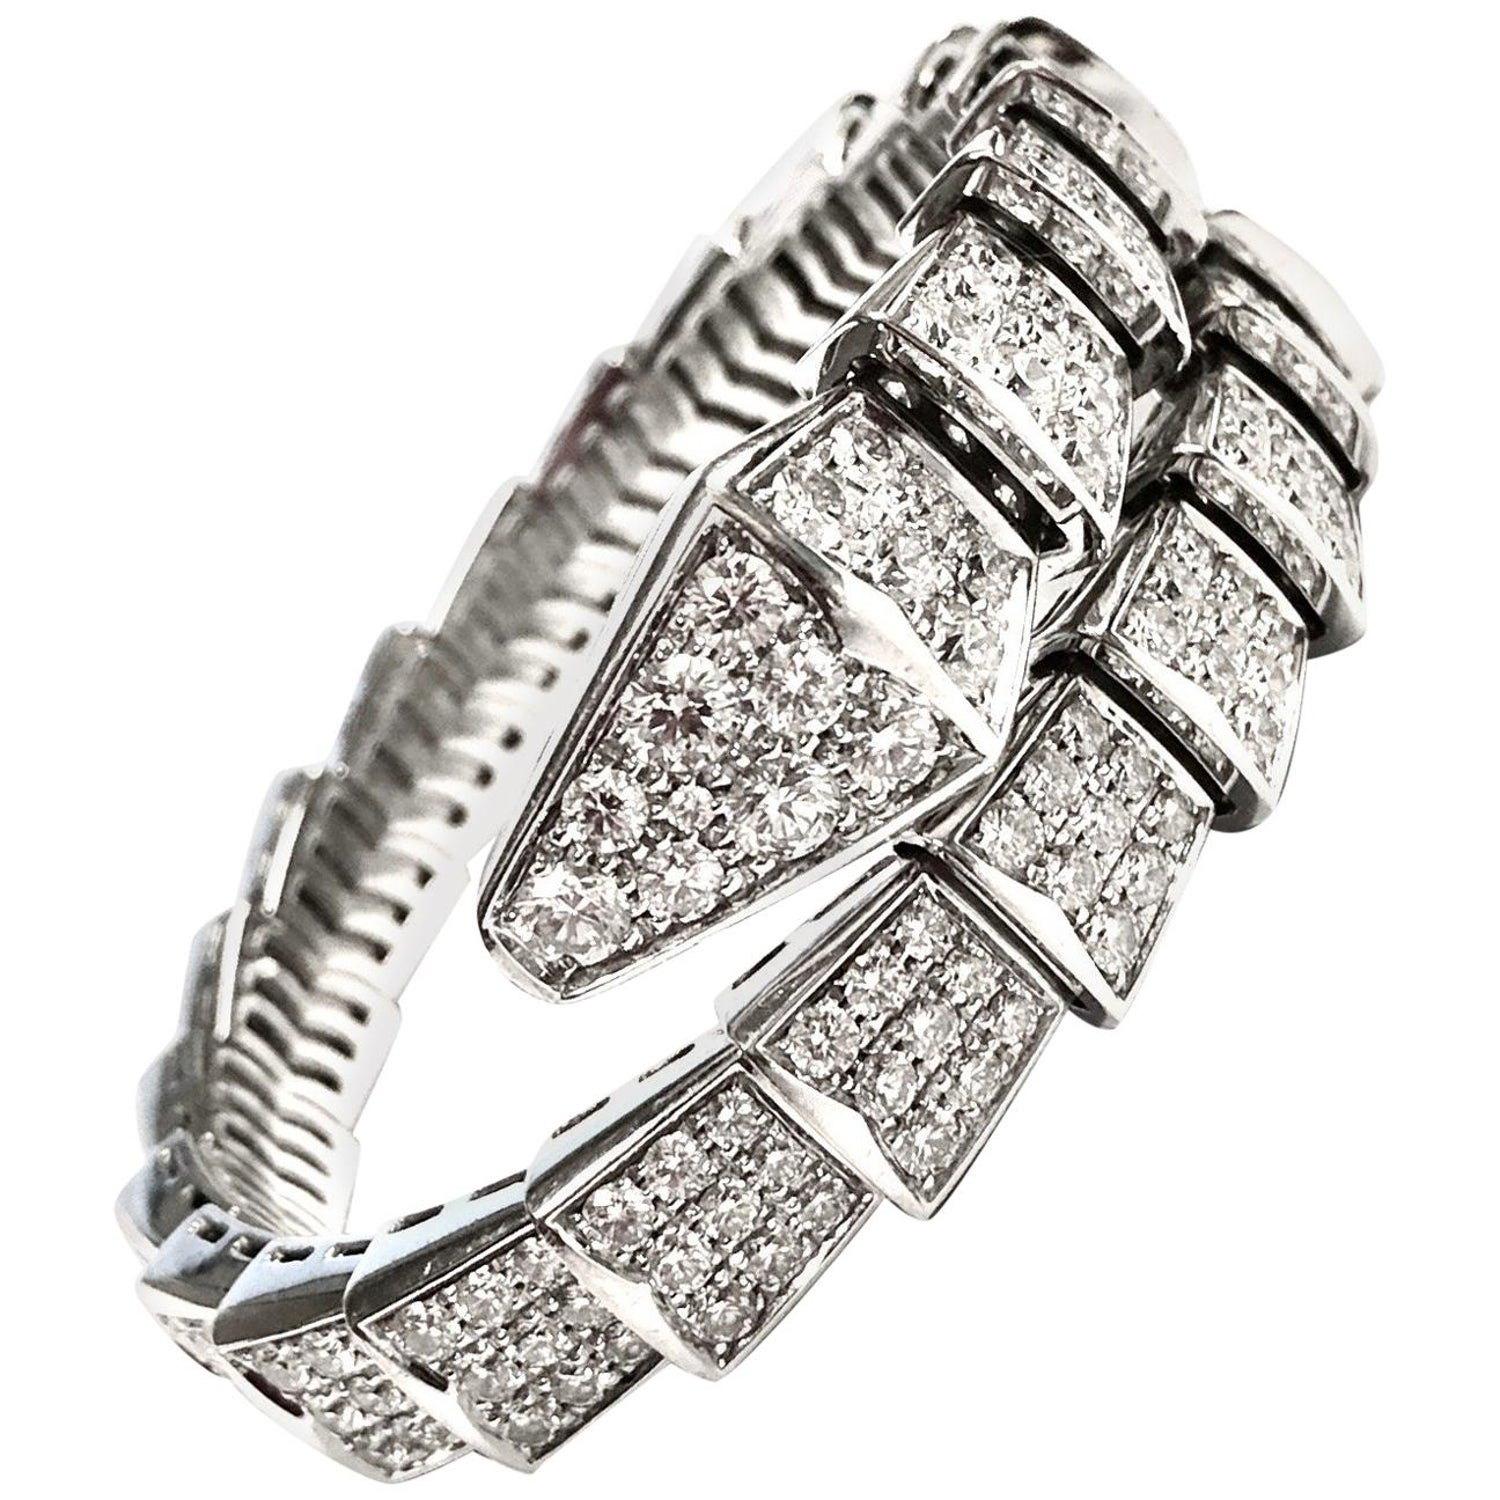 03592a640 Bulgari Serpenti One Coil 18 Karat White Gold Full Pave Diamond Bracelet at  1stdibs